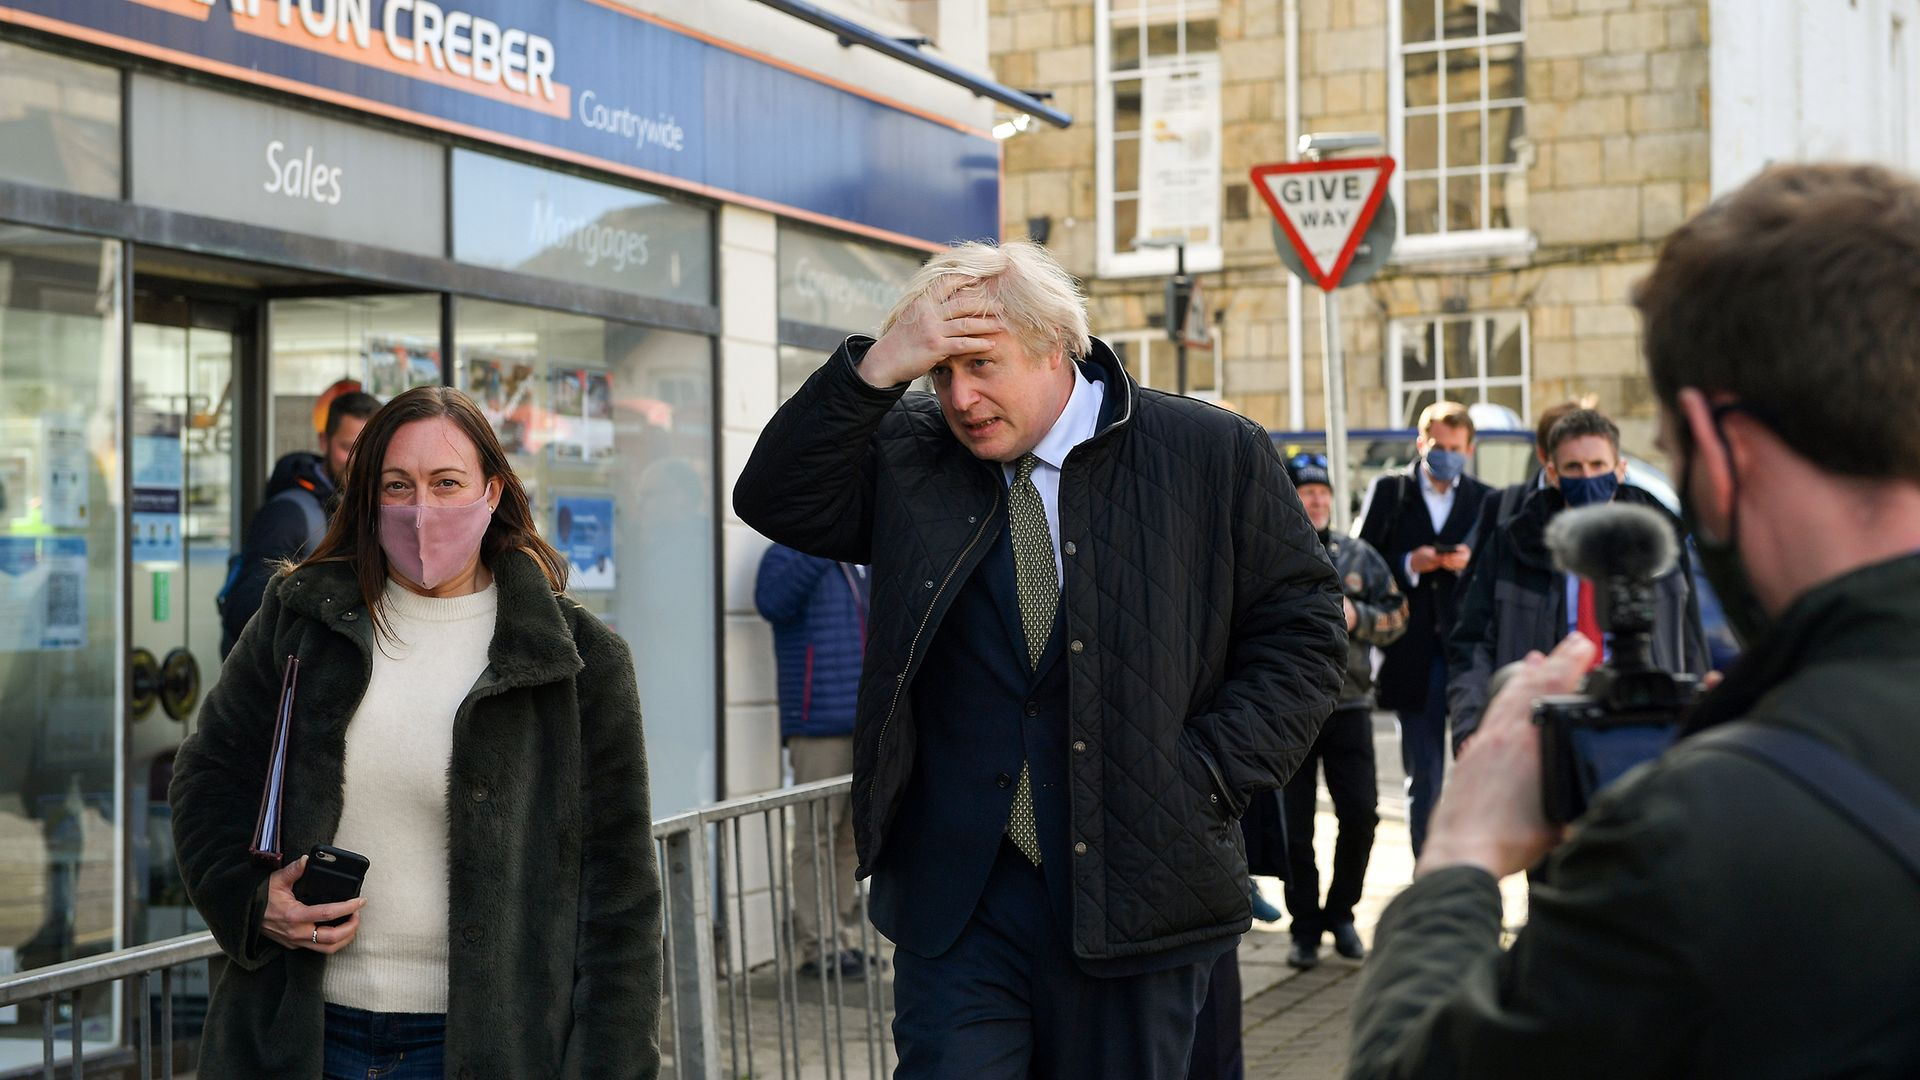 Prime Minister Boris Johnson during a visit to Truro, Cornwall - Credit: PA